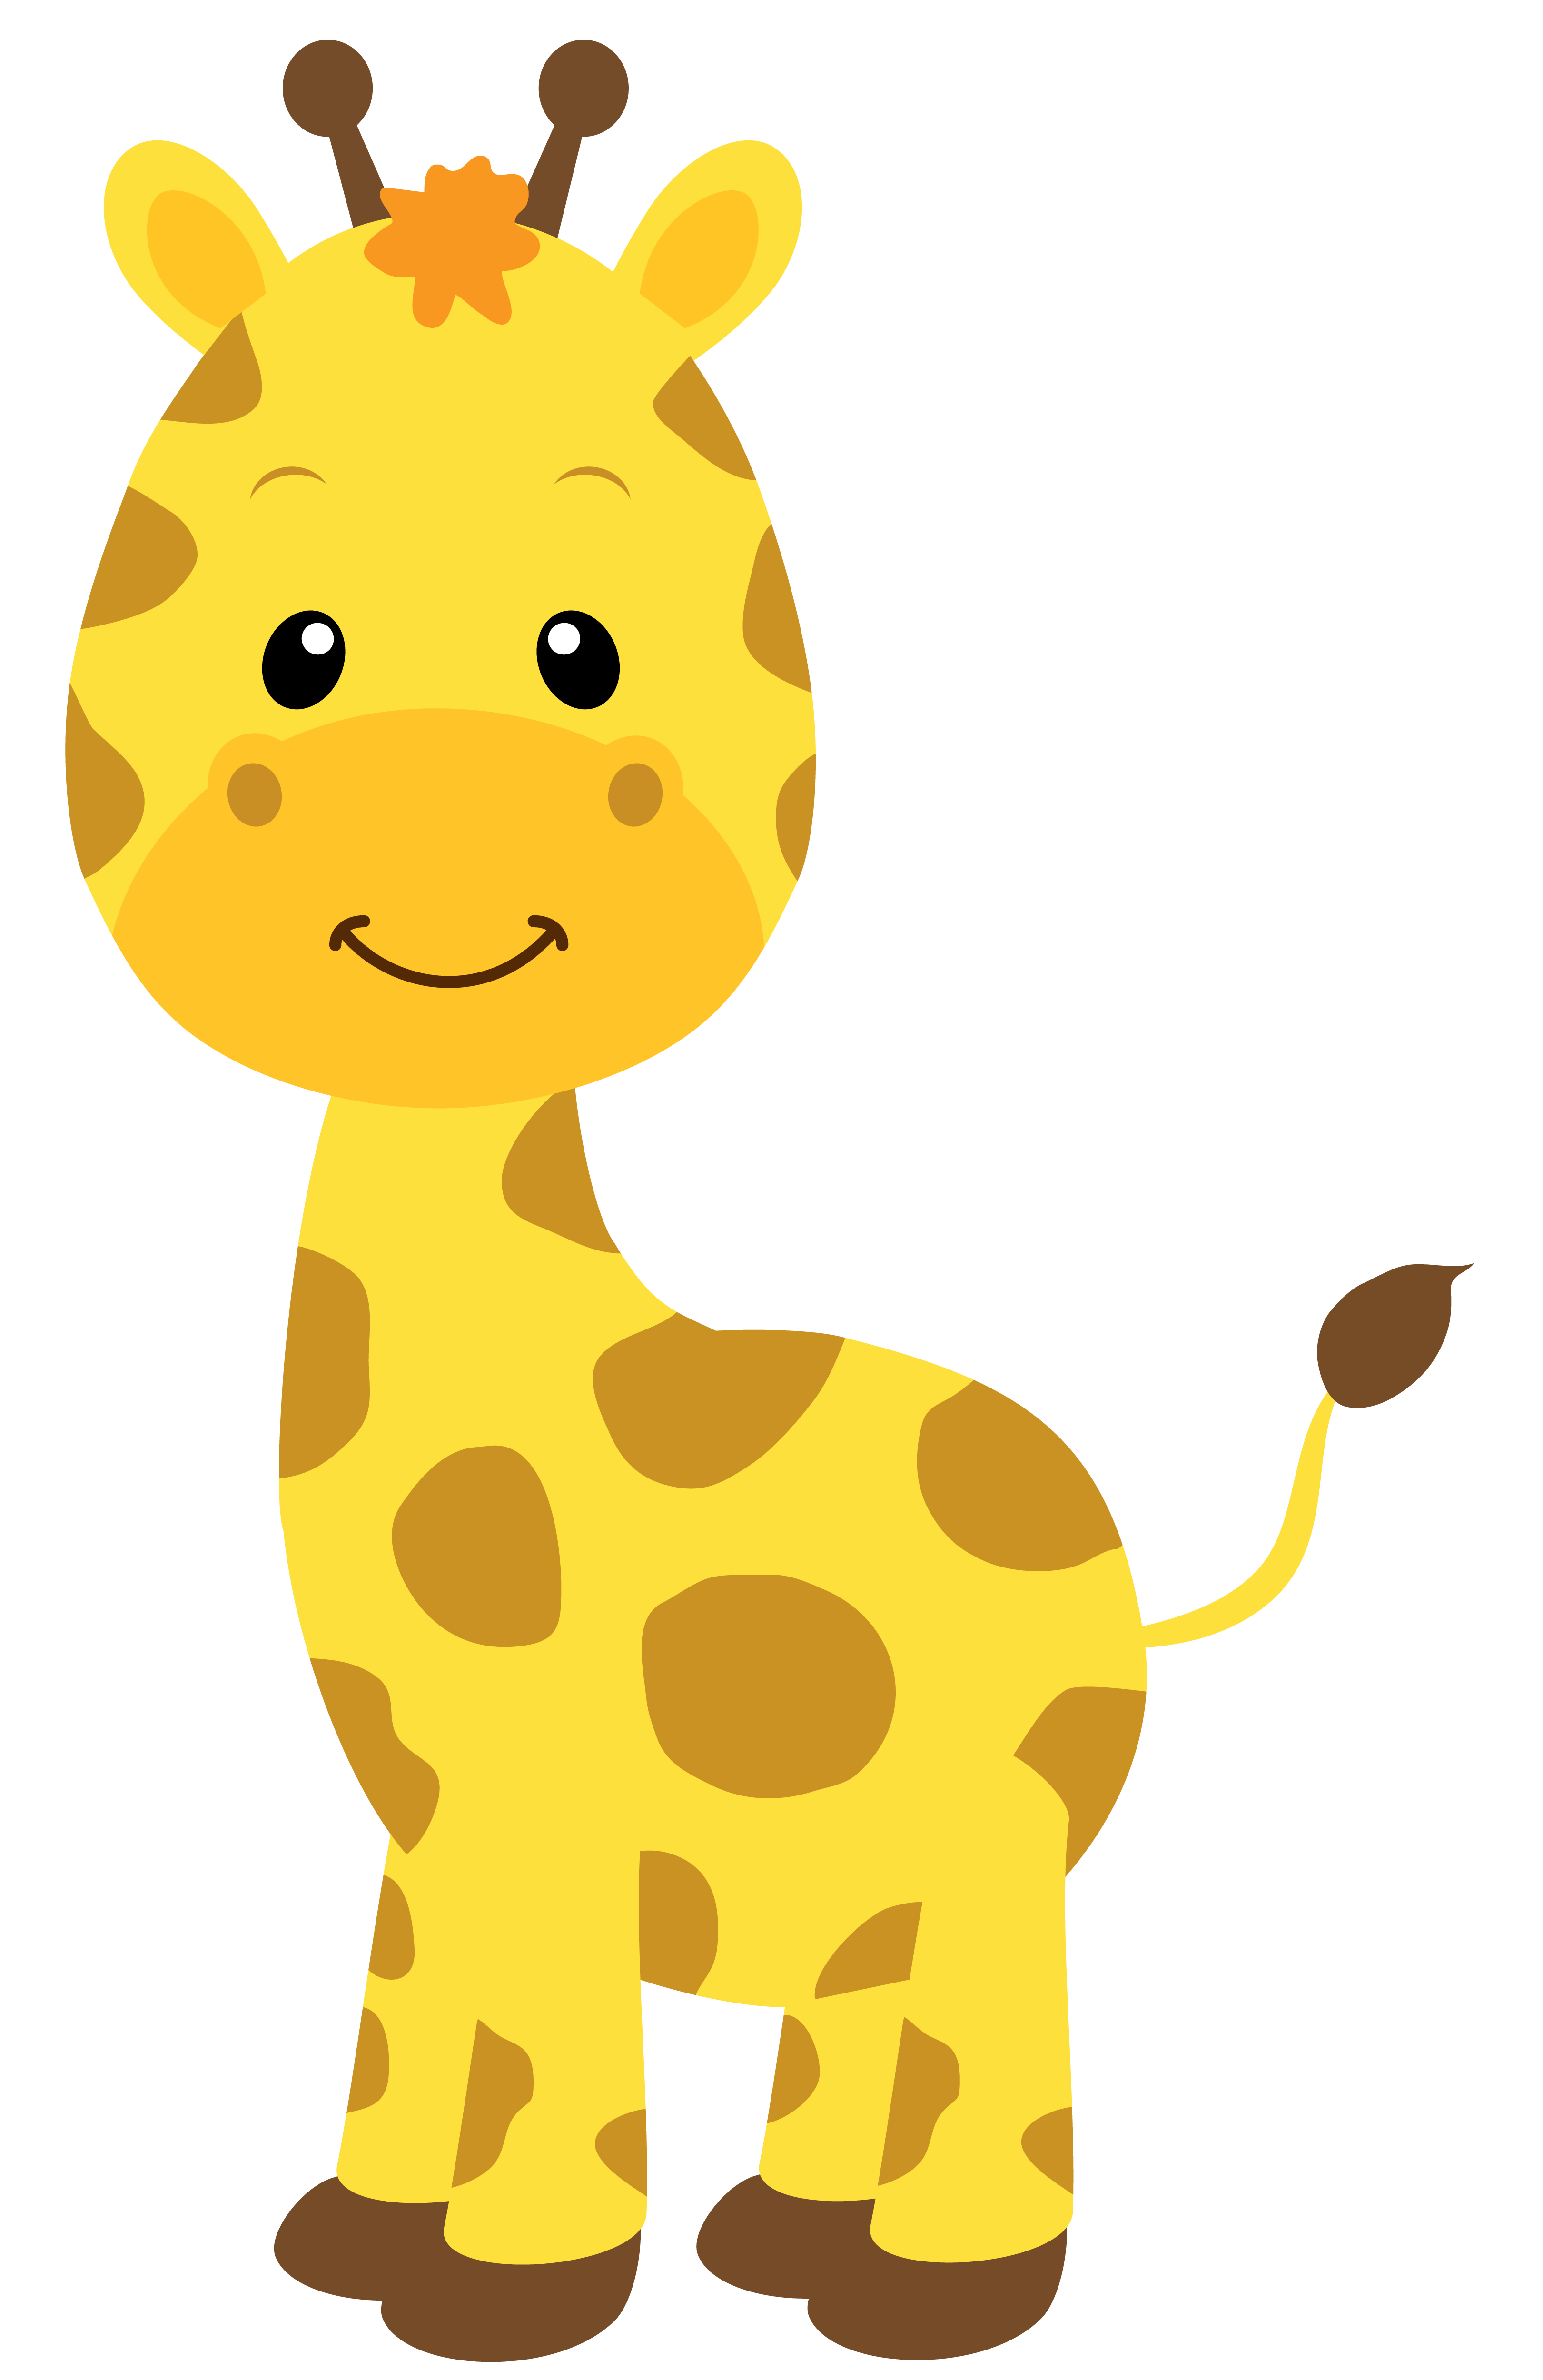 Cartoon Jungle Animals Clipart   Free download on ClipArtMag